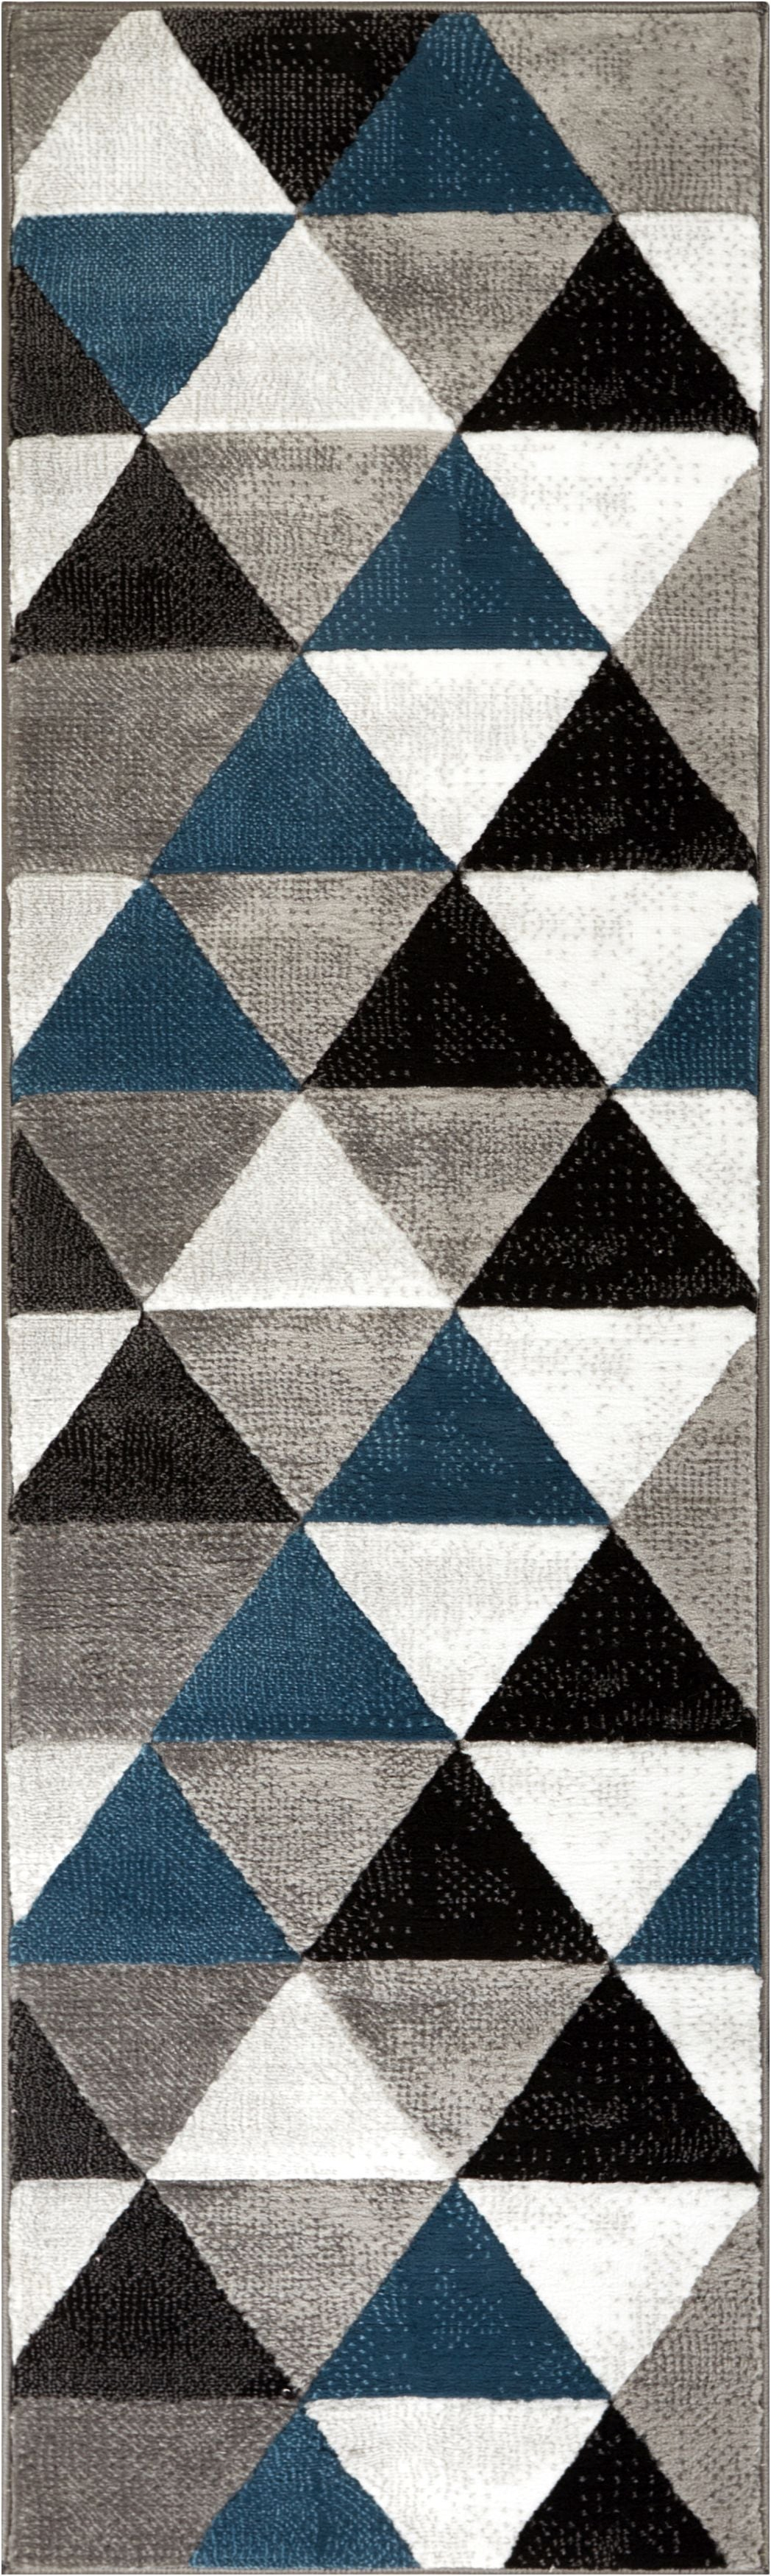 Gallery Of Arlo Tiles Blue Modern Triangle Pattern Area Rug With 34 Amazing Black Carpet Texture